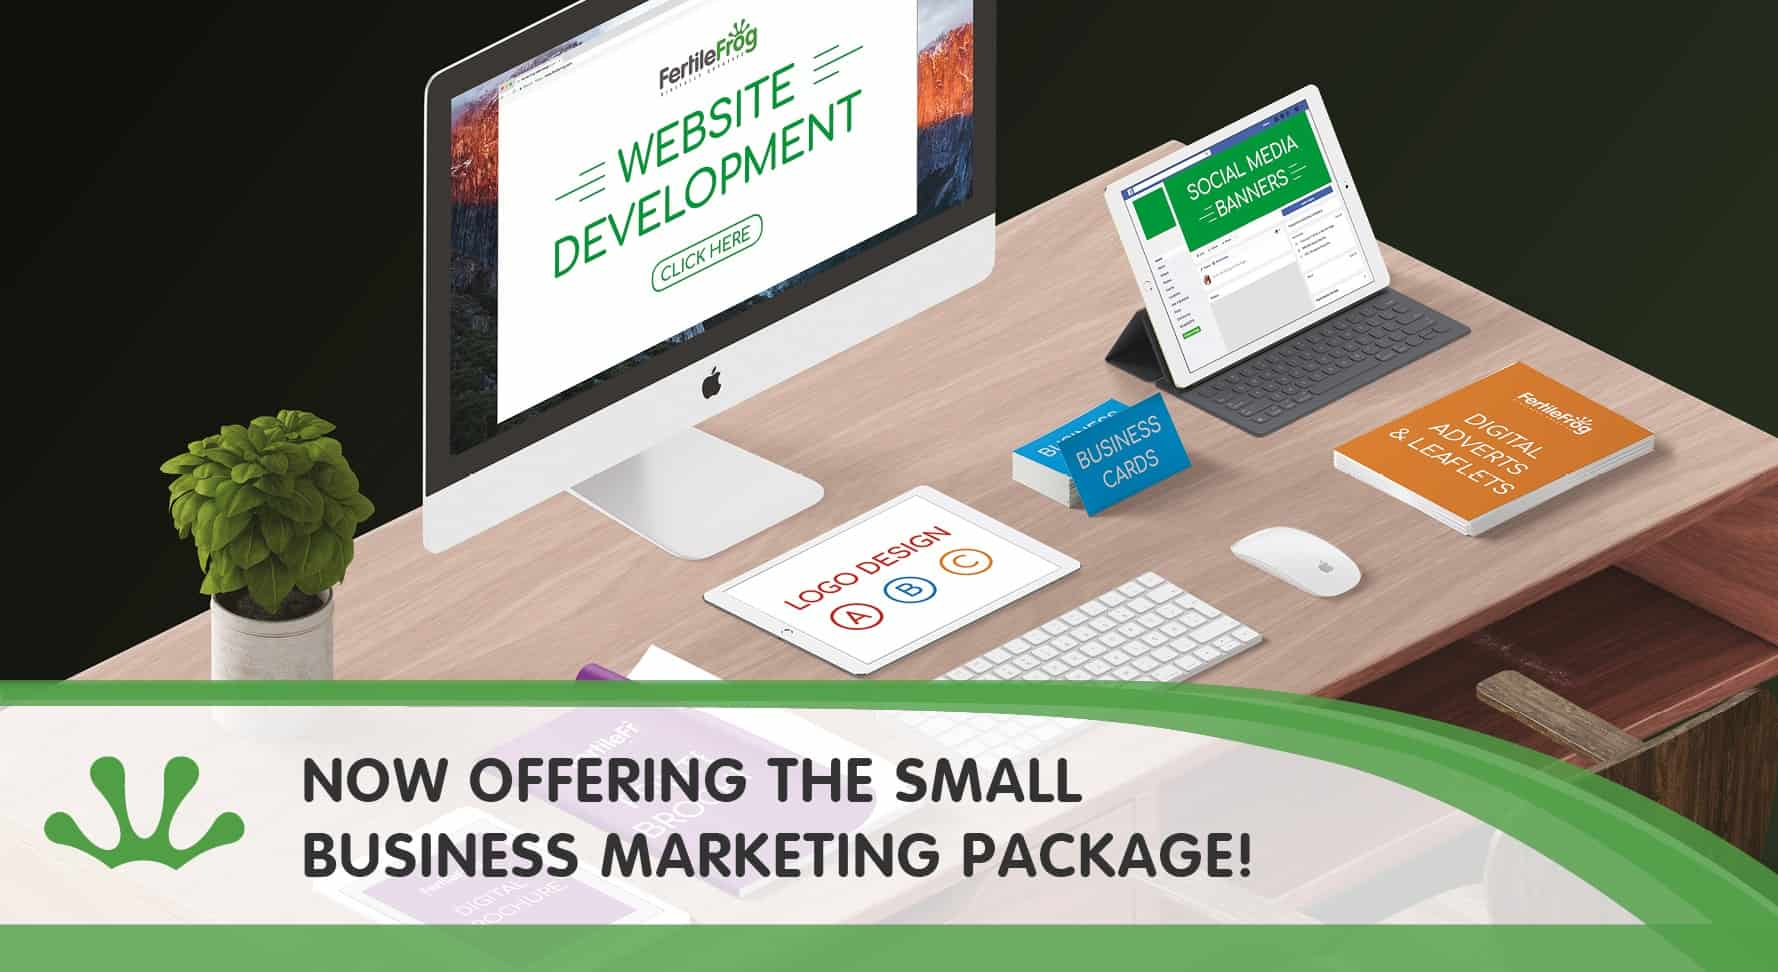 Fertile Frog Blog  Now Offering A Full Marketing Package. Shift Work Scheduling Software. I Need A Small Business Loan. Paragon Cable El Paso Tx Bond Fund Of America. Termite Inspection Cost Visa Business Account. Metlife In Network Dentist Florida Inst Tech. Online Mba No Gmat Accredited. Accidental Health Insurance Pet Partners Inc. Cablevision Business Support